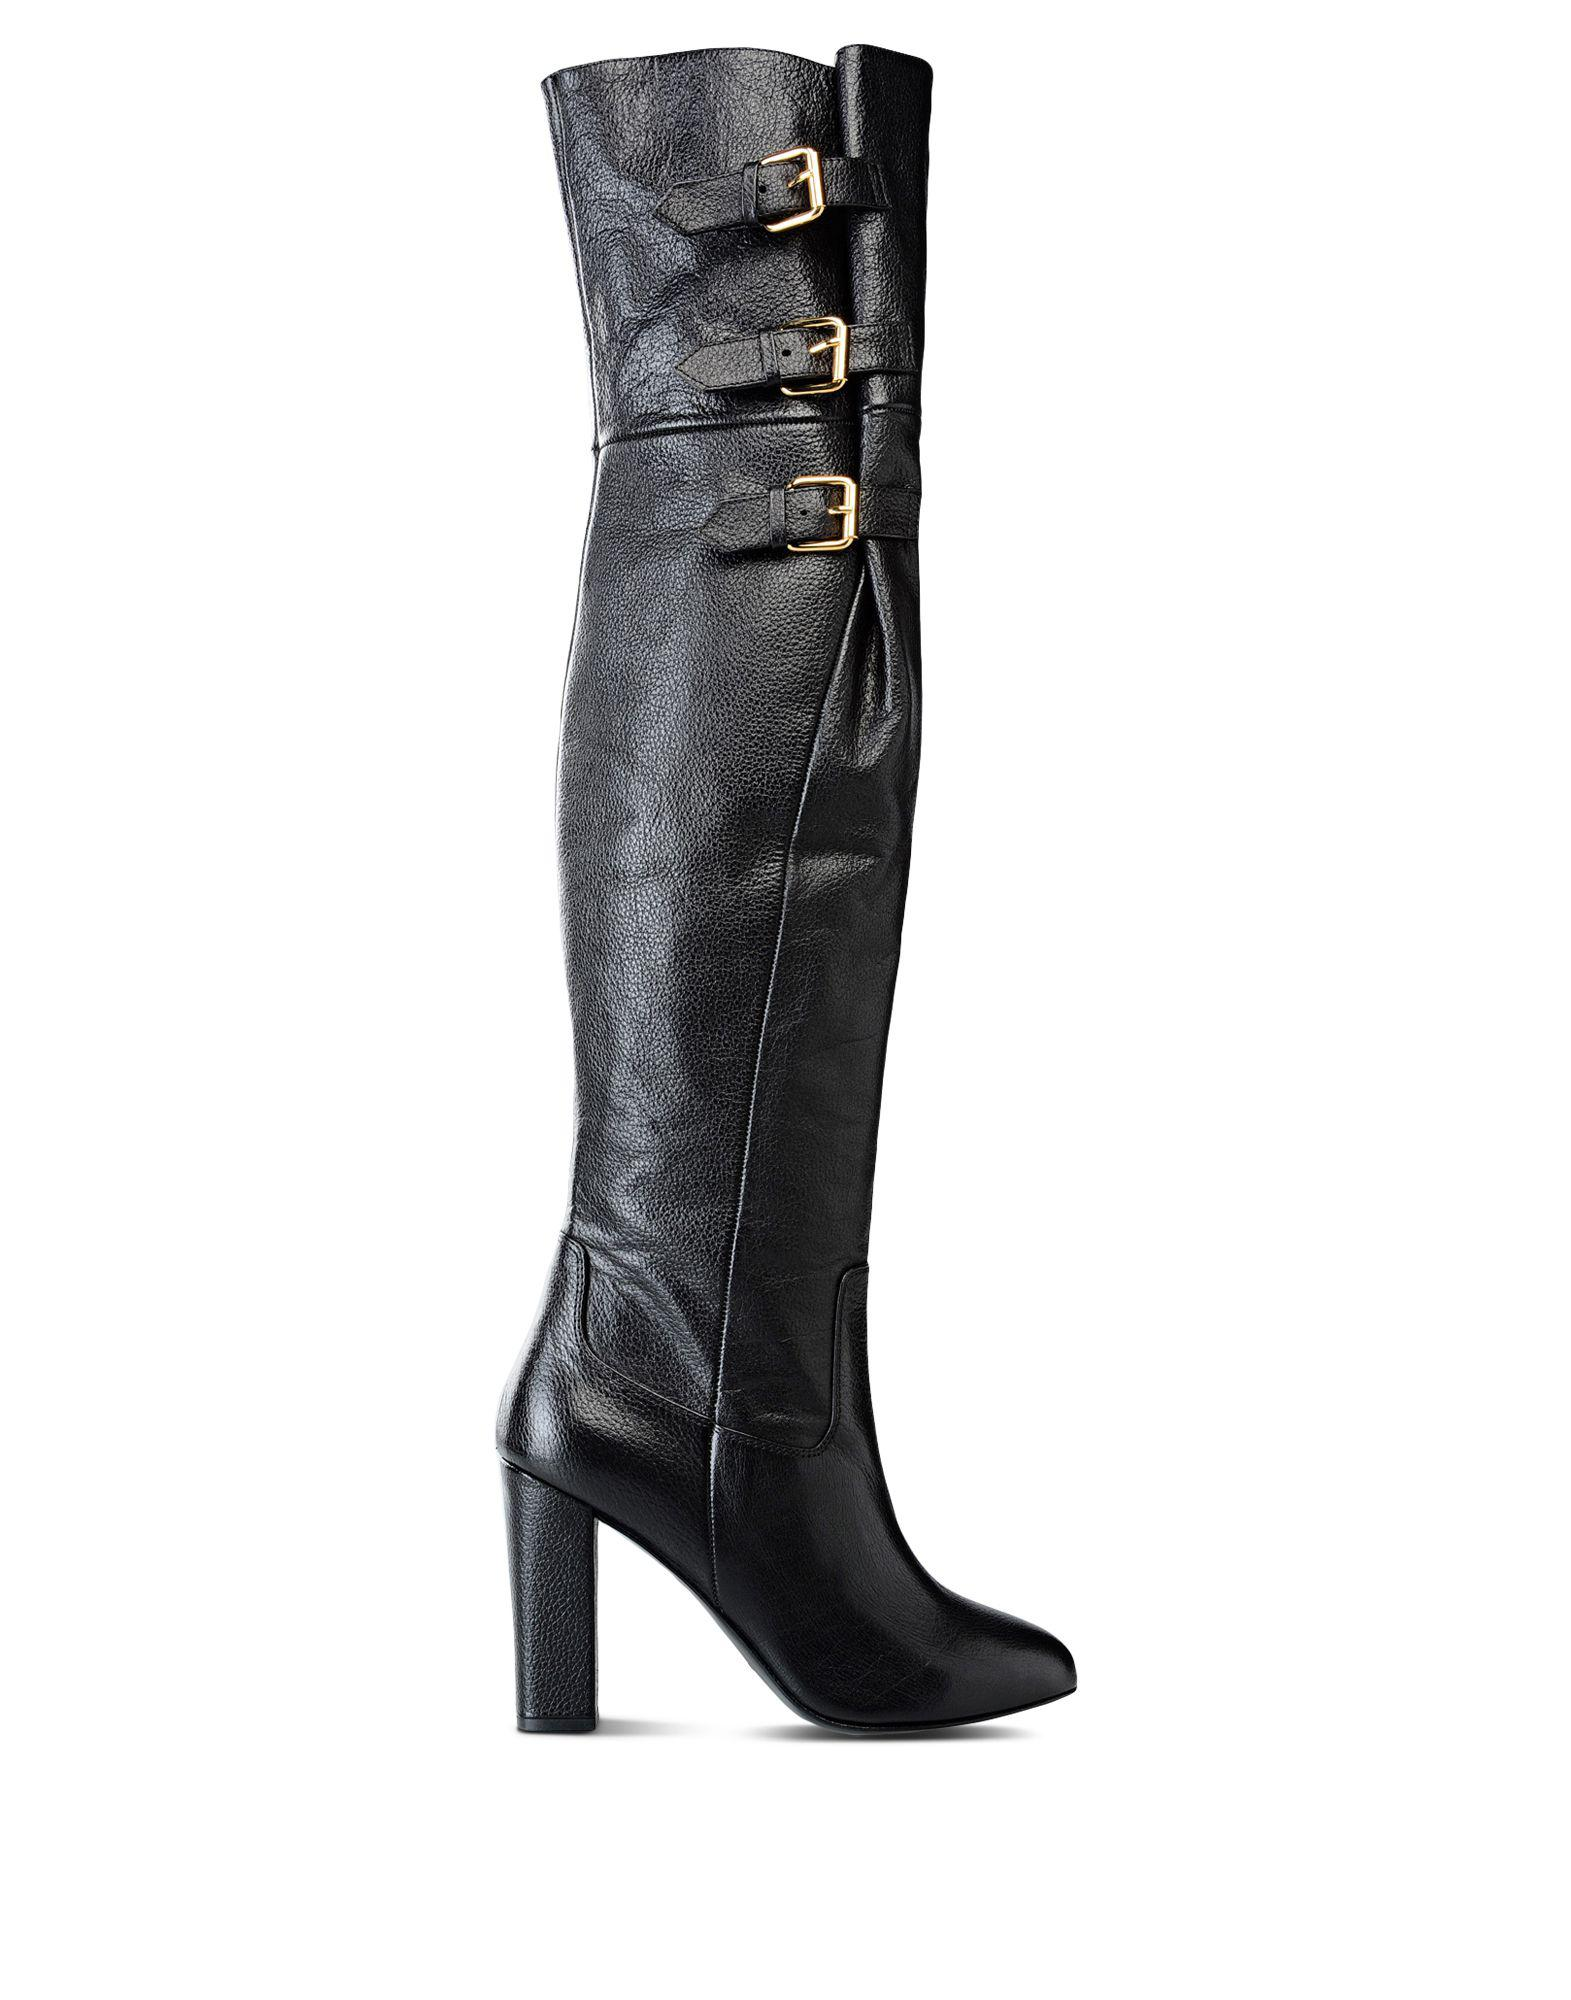 6986f267737 Lyst - Boutique Moschino Buckled Goatskin Knee-High Boots in Black - Save  57.04022988505747%